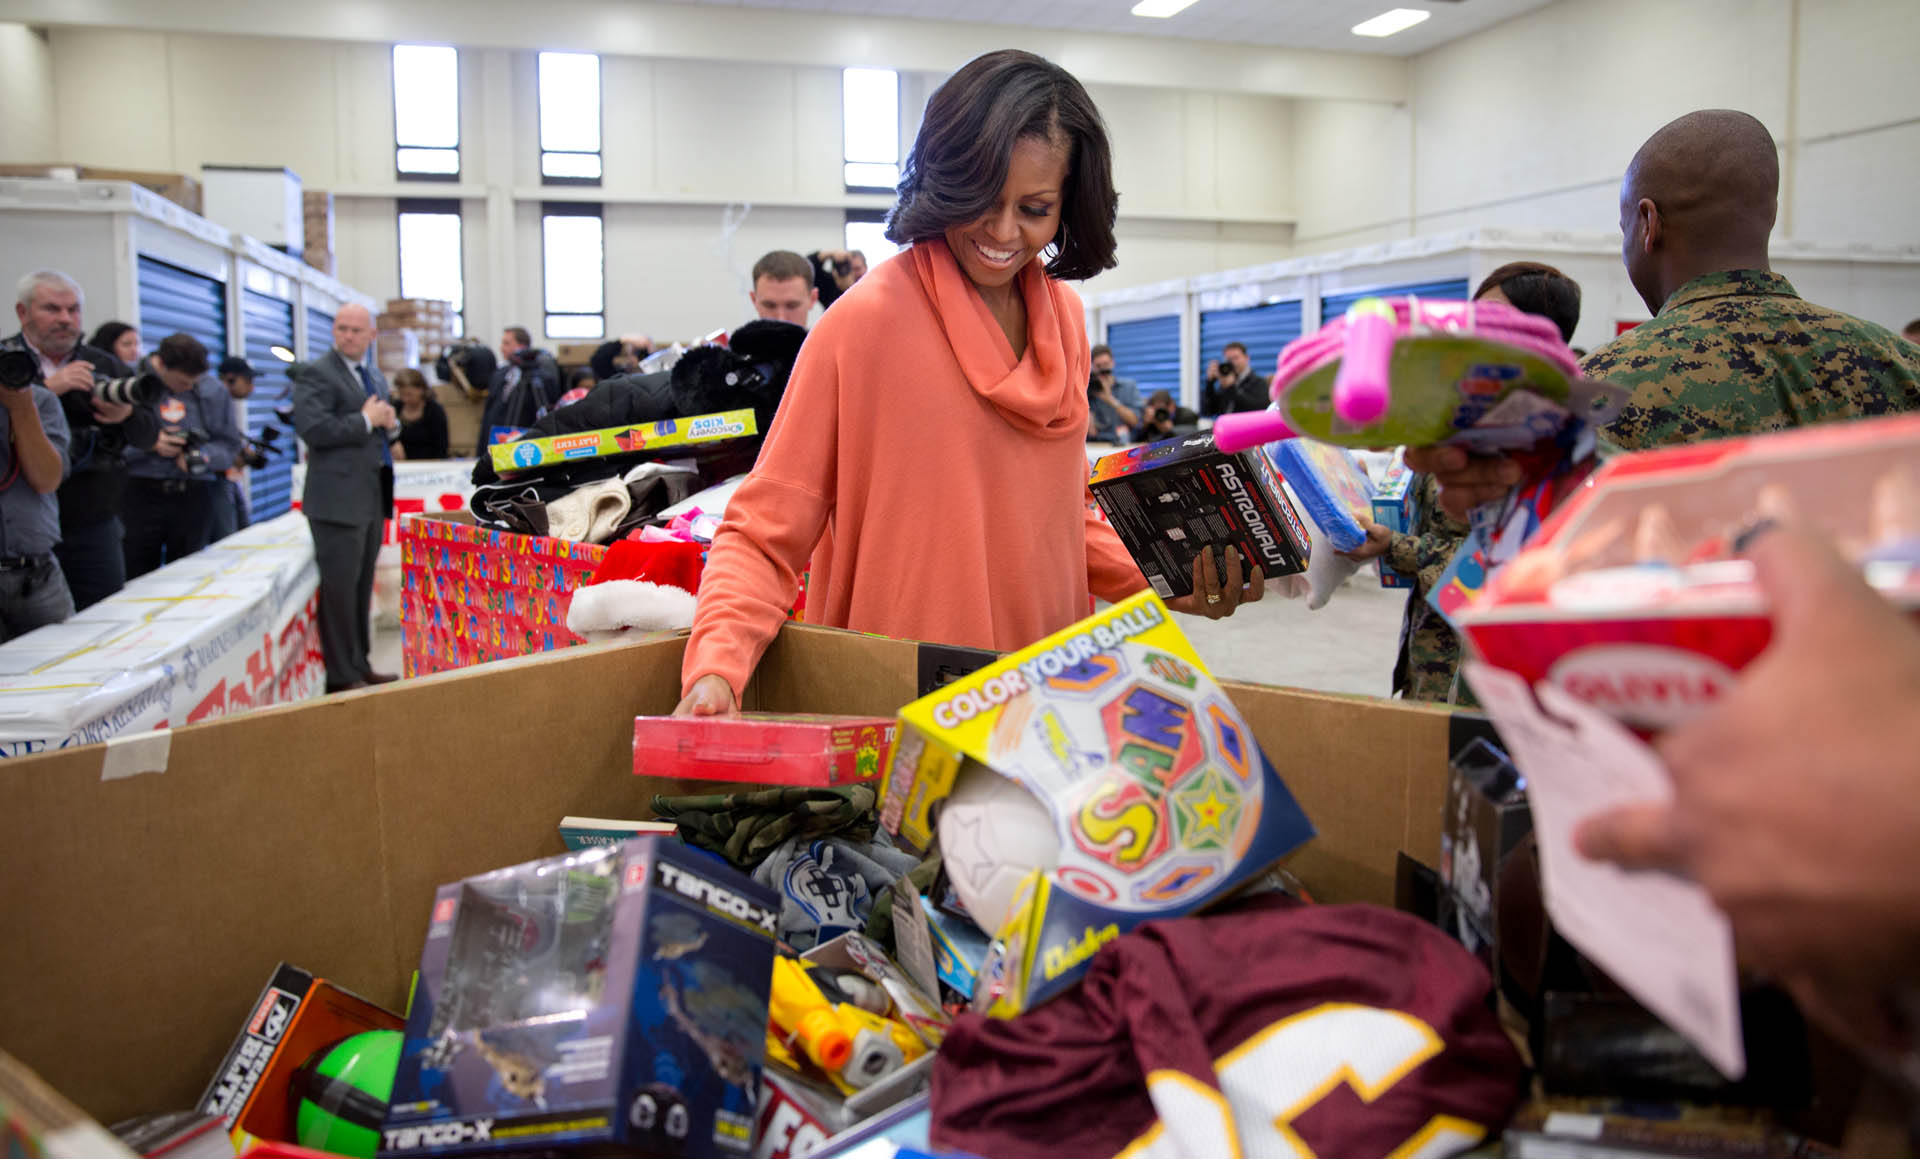 First Lady Michelle Obama helps sort toys at a Toys for Tots event, Dec. 11, 2012.